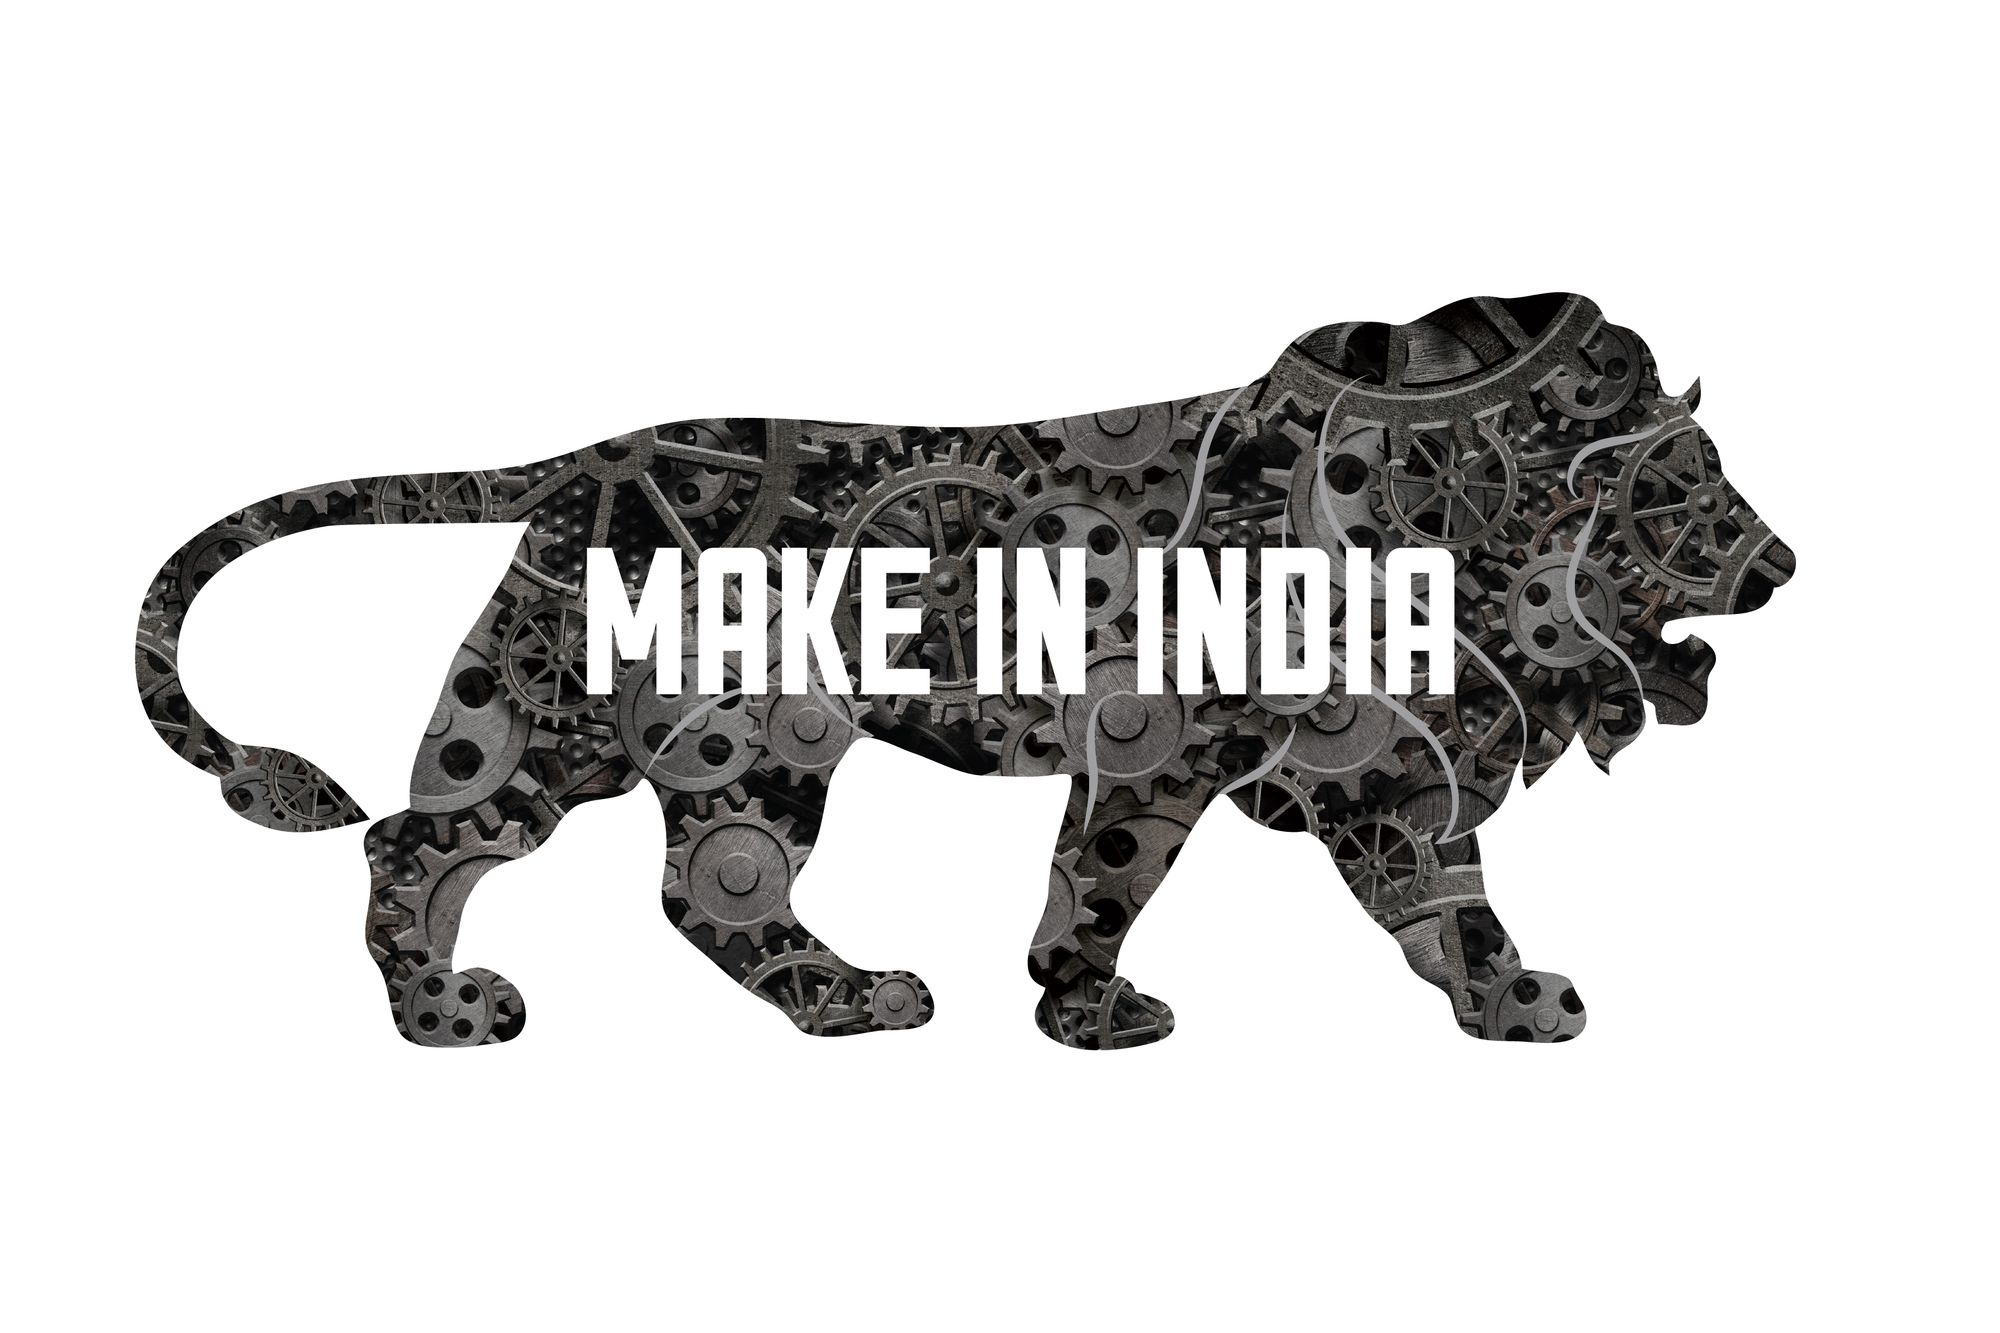 Employment Opportunities With Make In India Campaign.